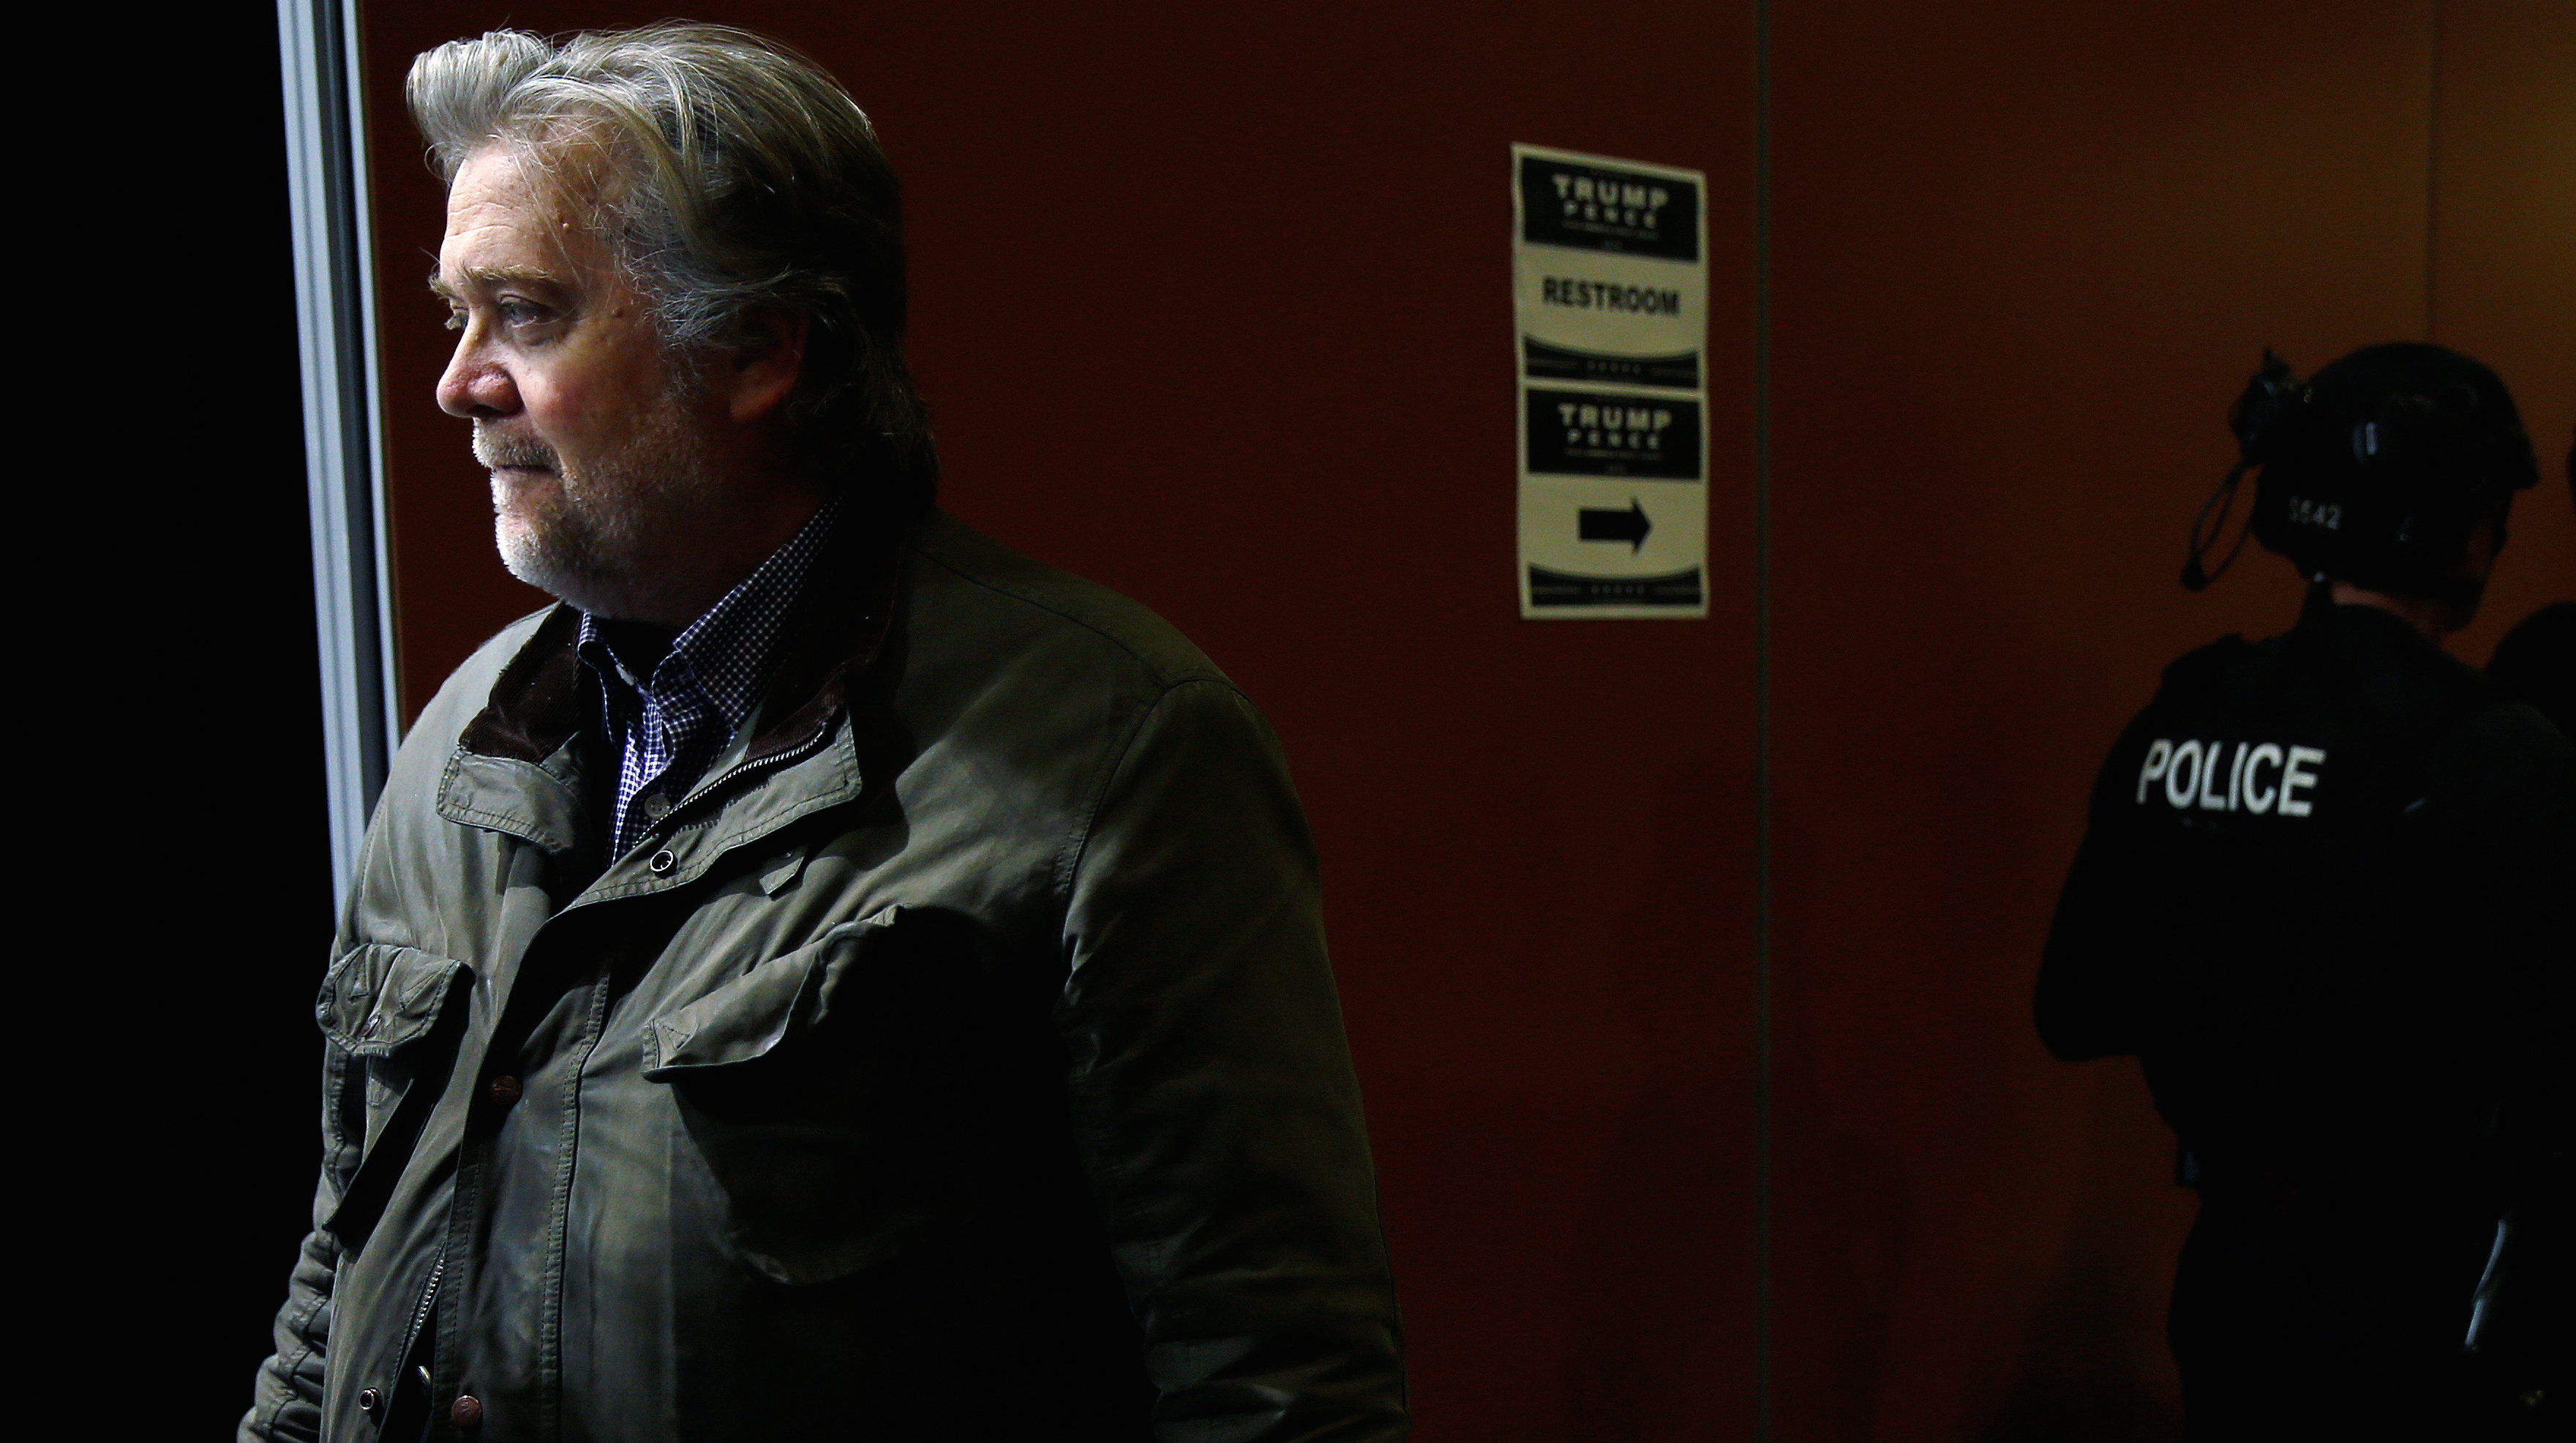 Republican presidential nominee Donald Trump's campaign CEO Steve Bannon is pictured backstage after a campaign event in Phoenix, Arizona, U.S. October 29, 2016.